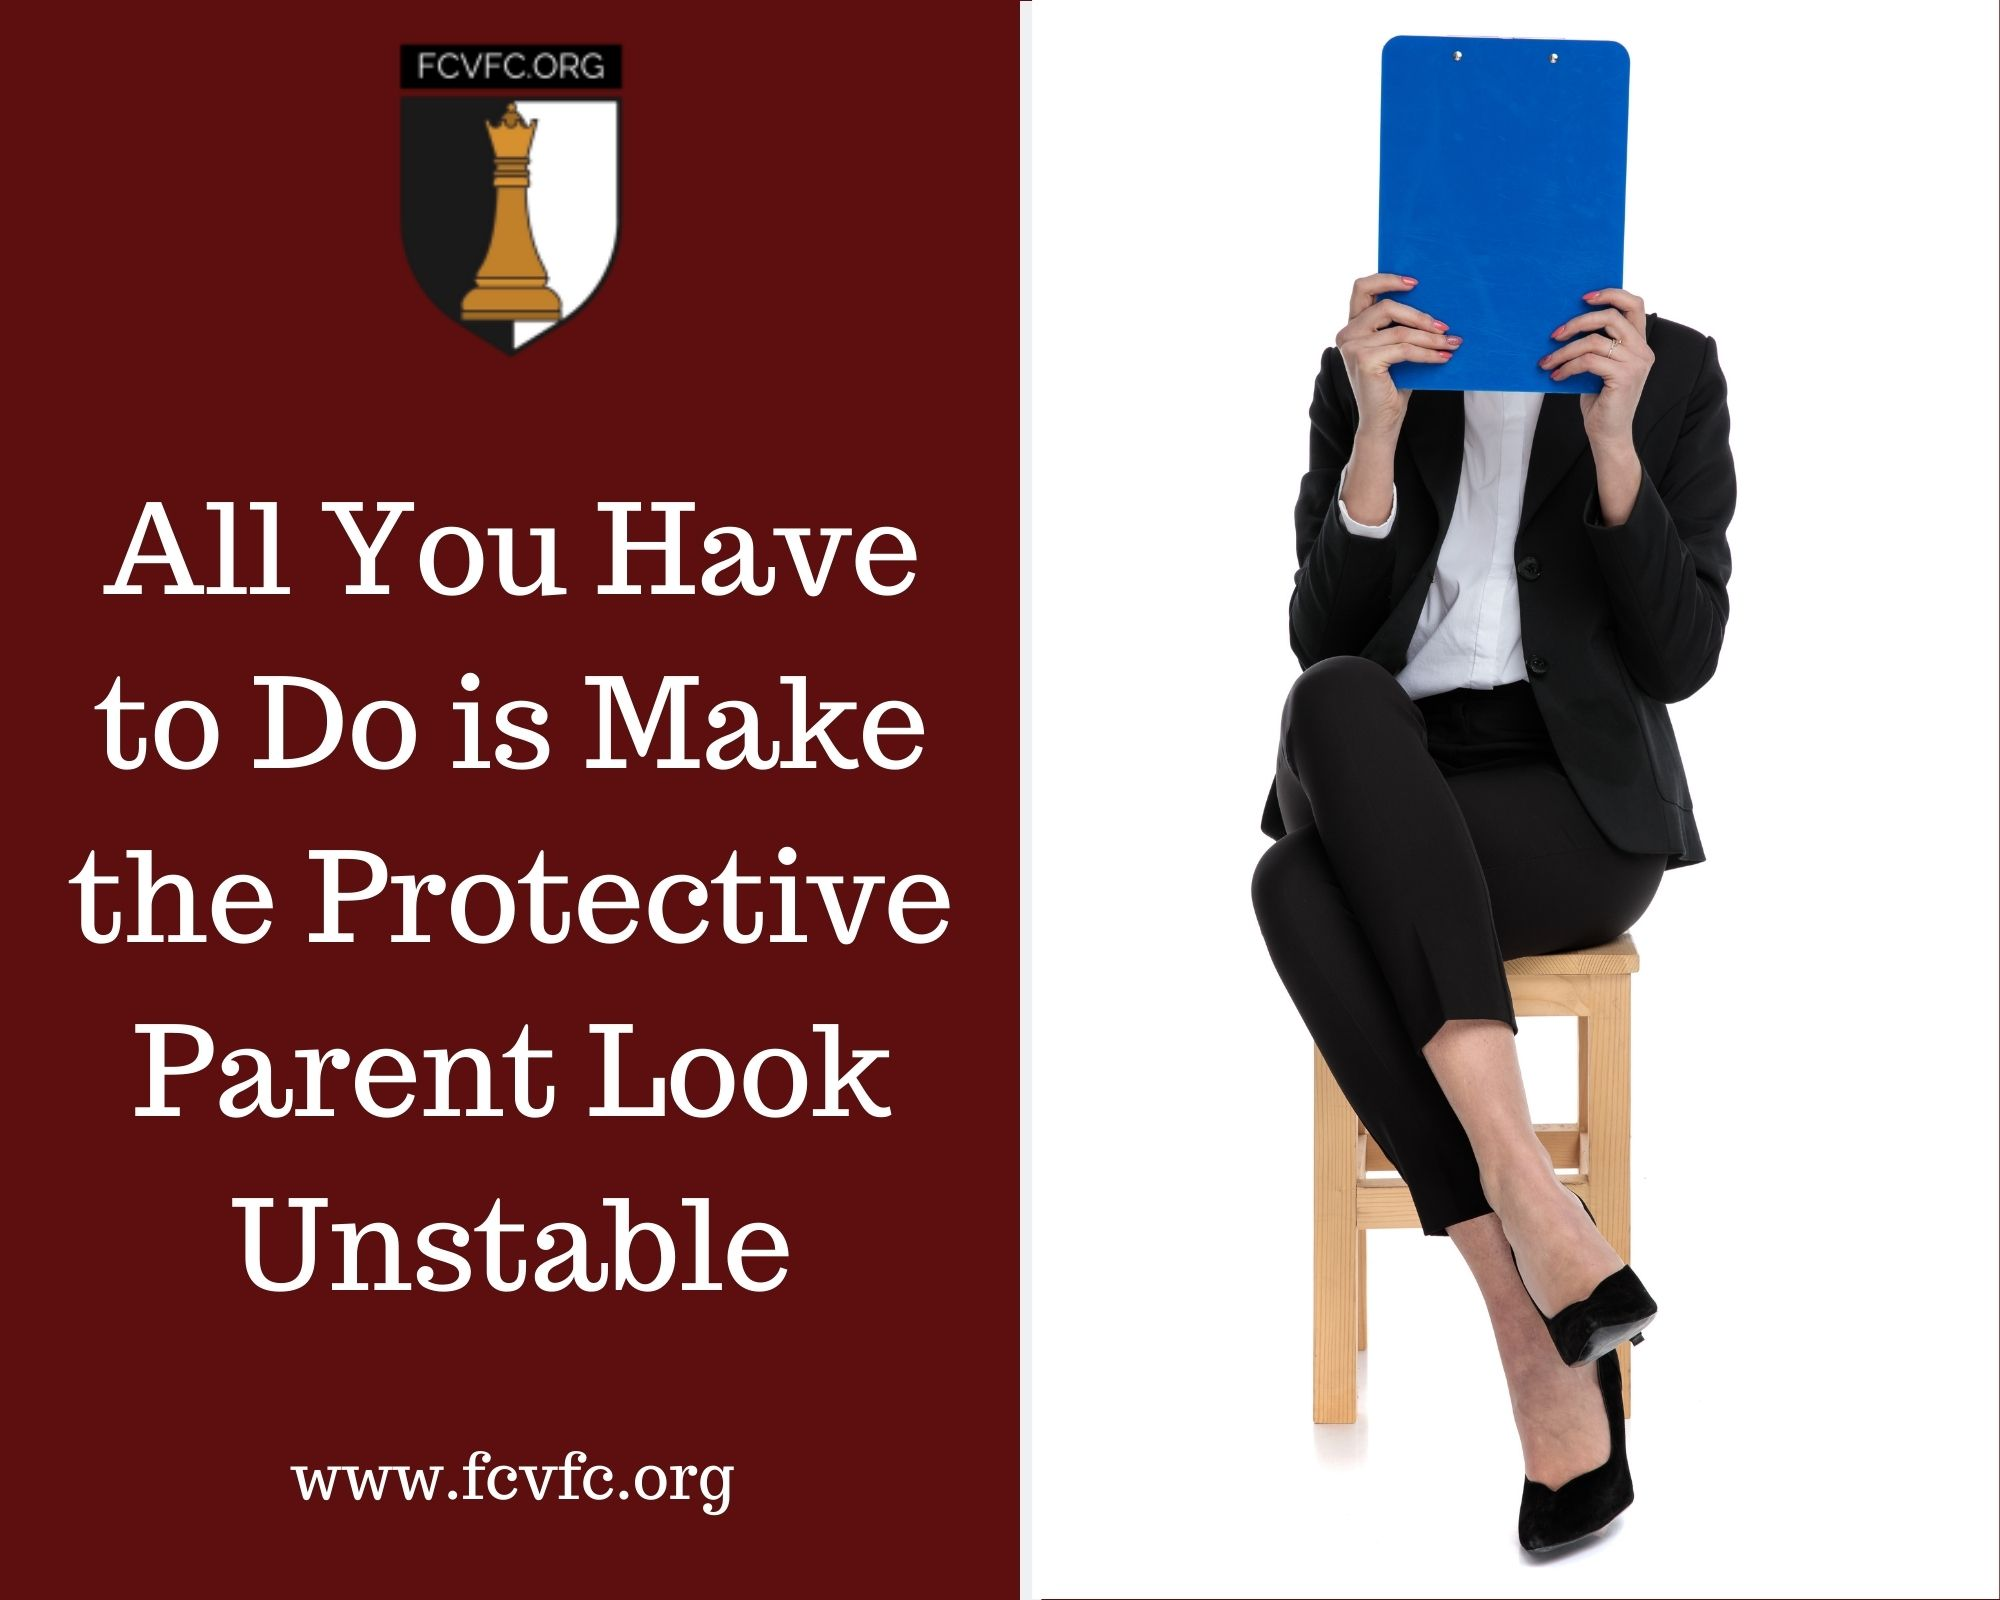 All You Have to Do is Make the Protective Parent Look Unstable